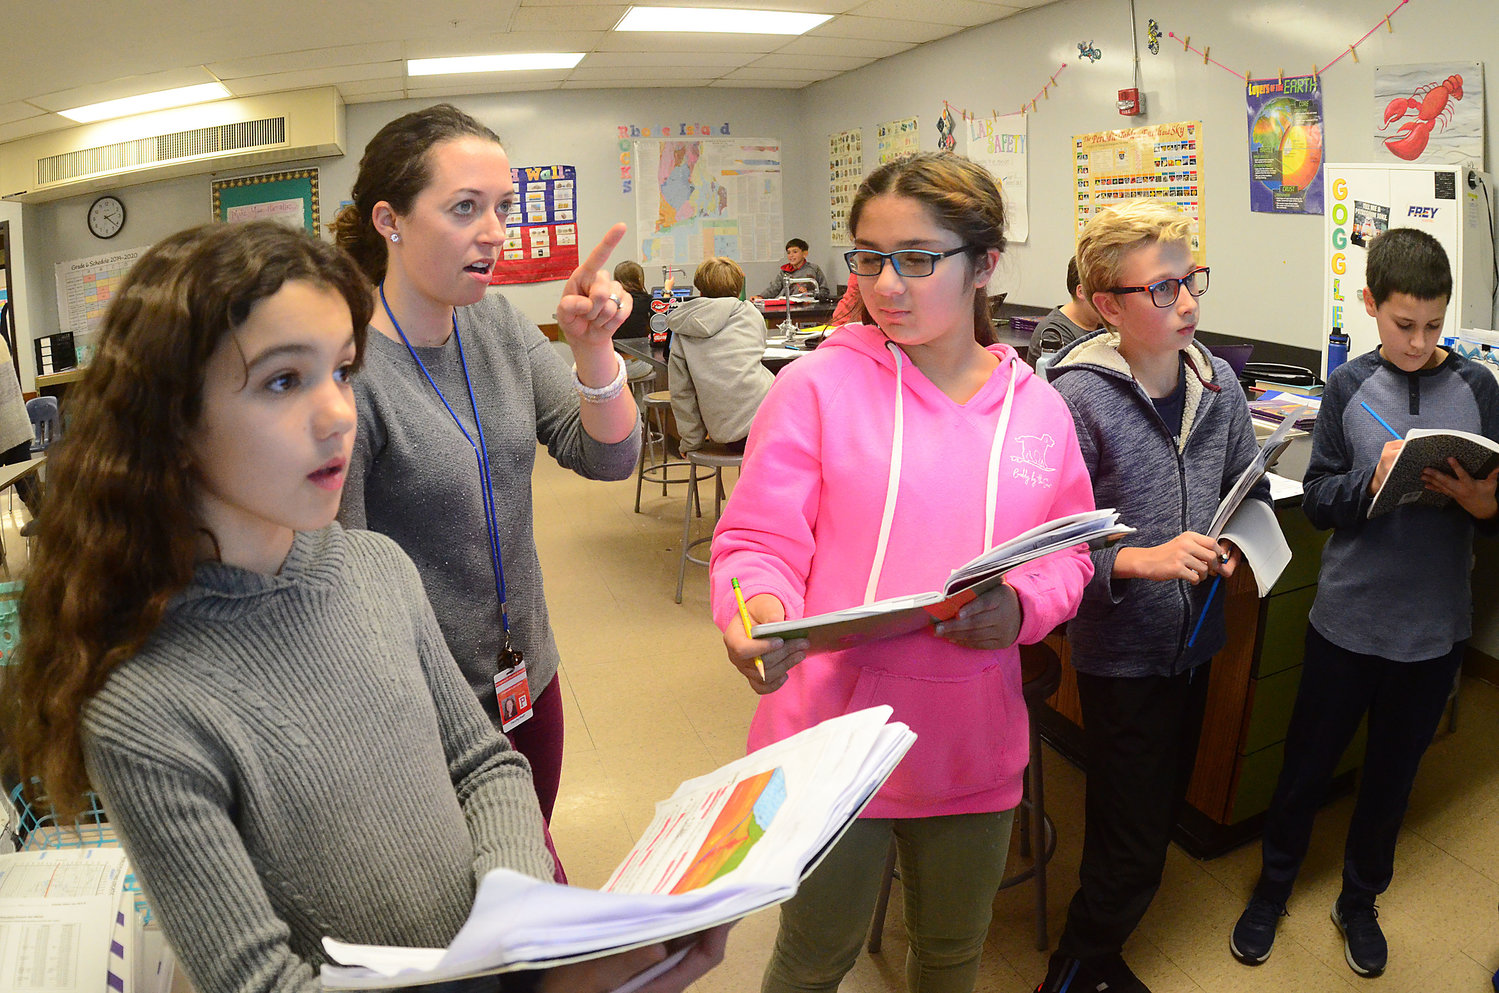 Sixth-graders Lorea Loyola (left), science teacher, Hannah Lancaster, Izzy Chobanian, David Gilmore and Jack Tobin work on a geography problem using a smart screen TV.